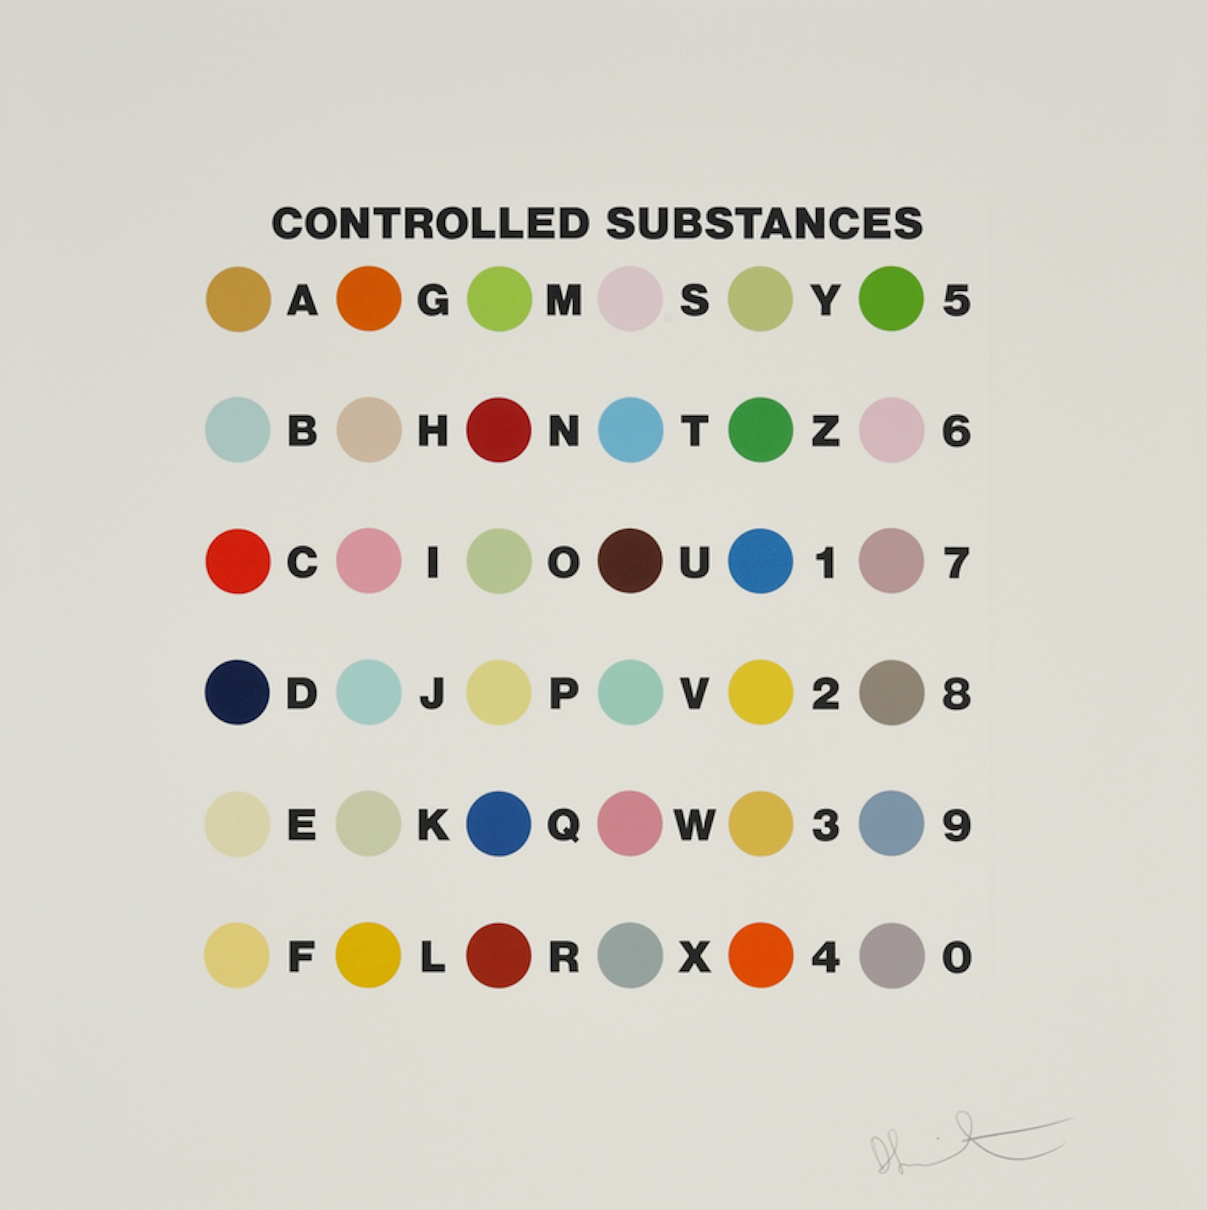 Controlled Substance by Damien Hirst